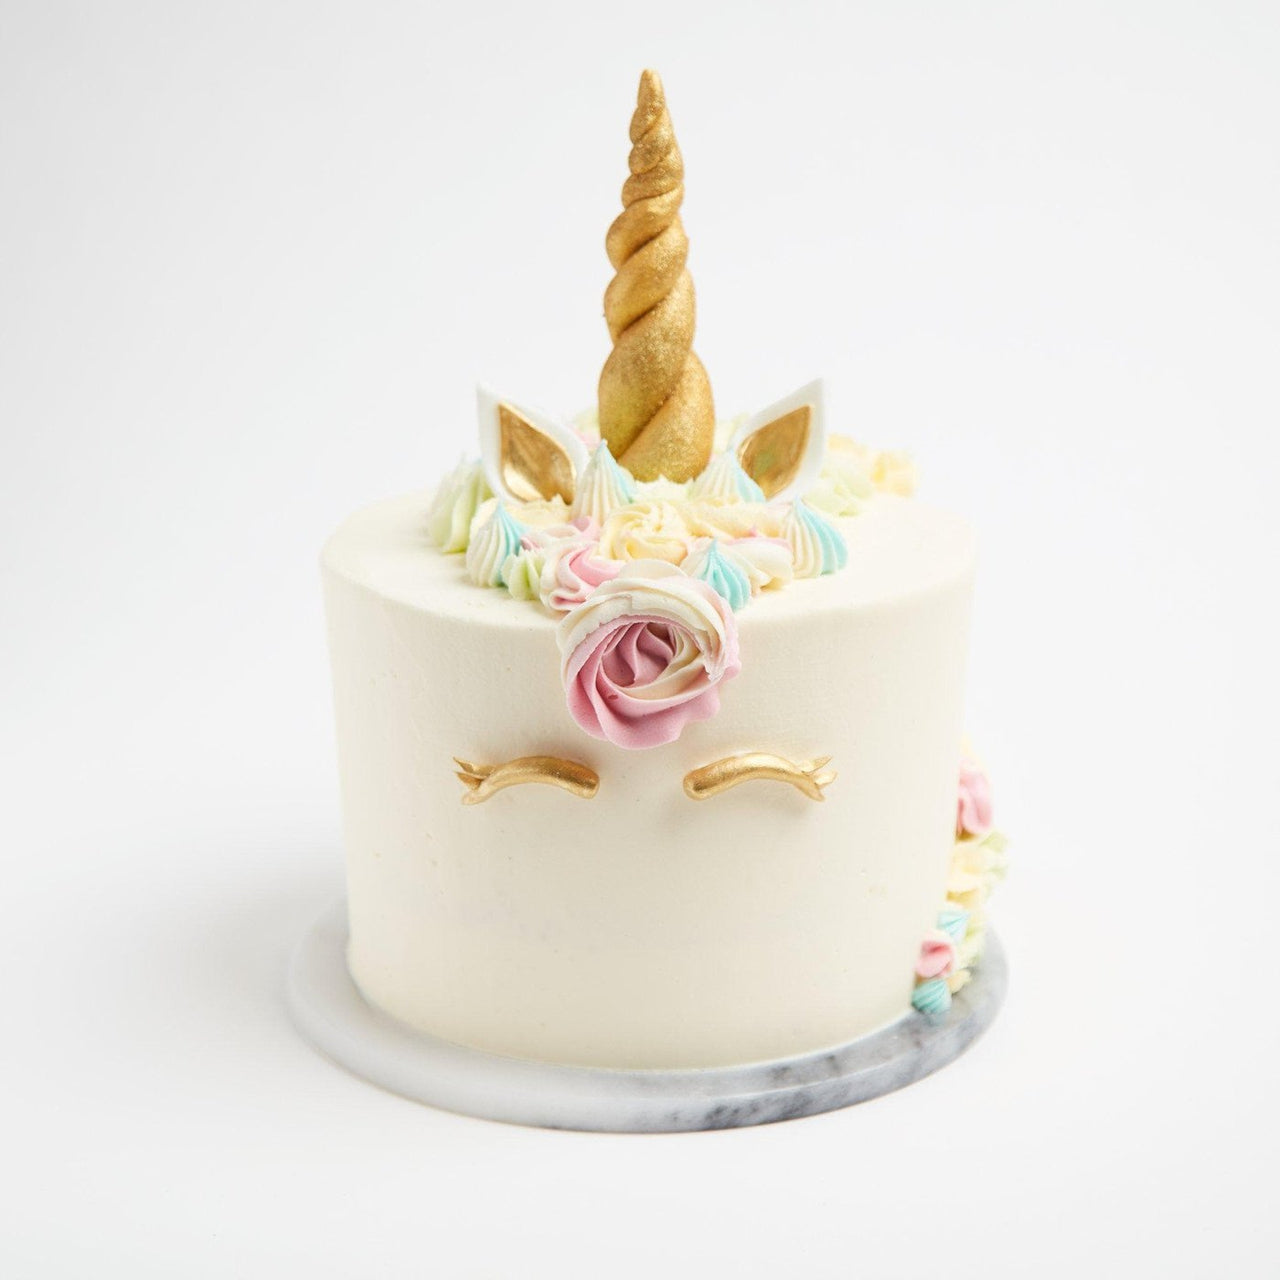 The Full Unicorn by Crumbs & Doilies